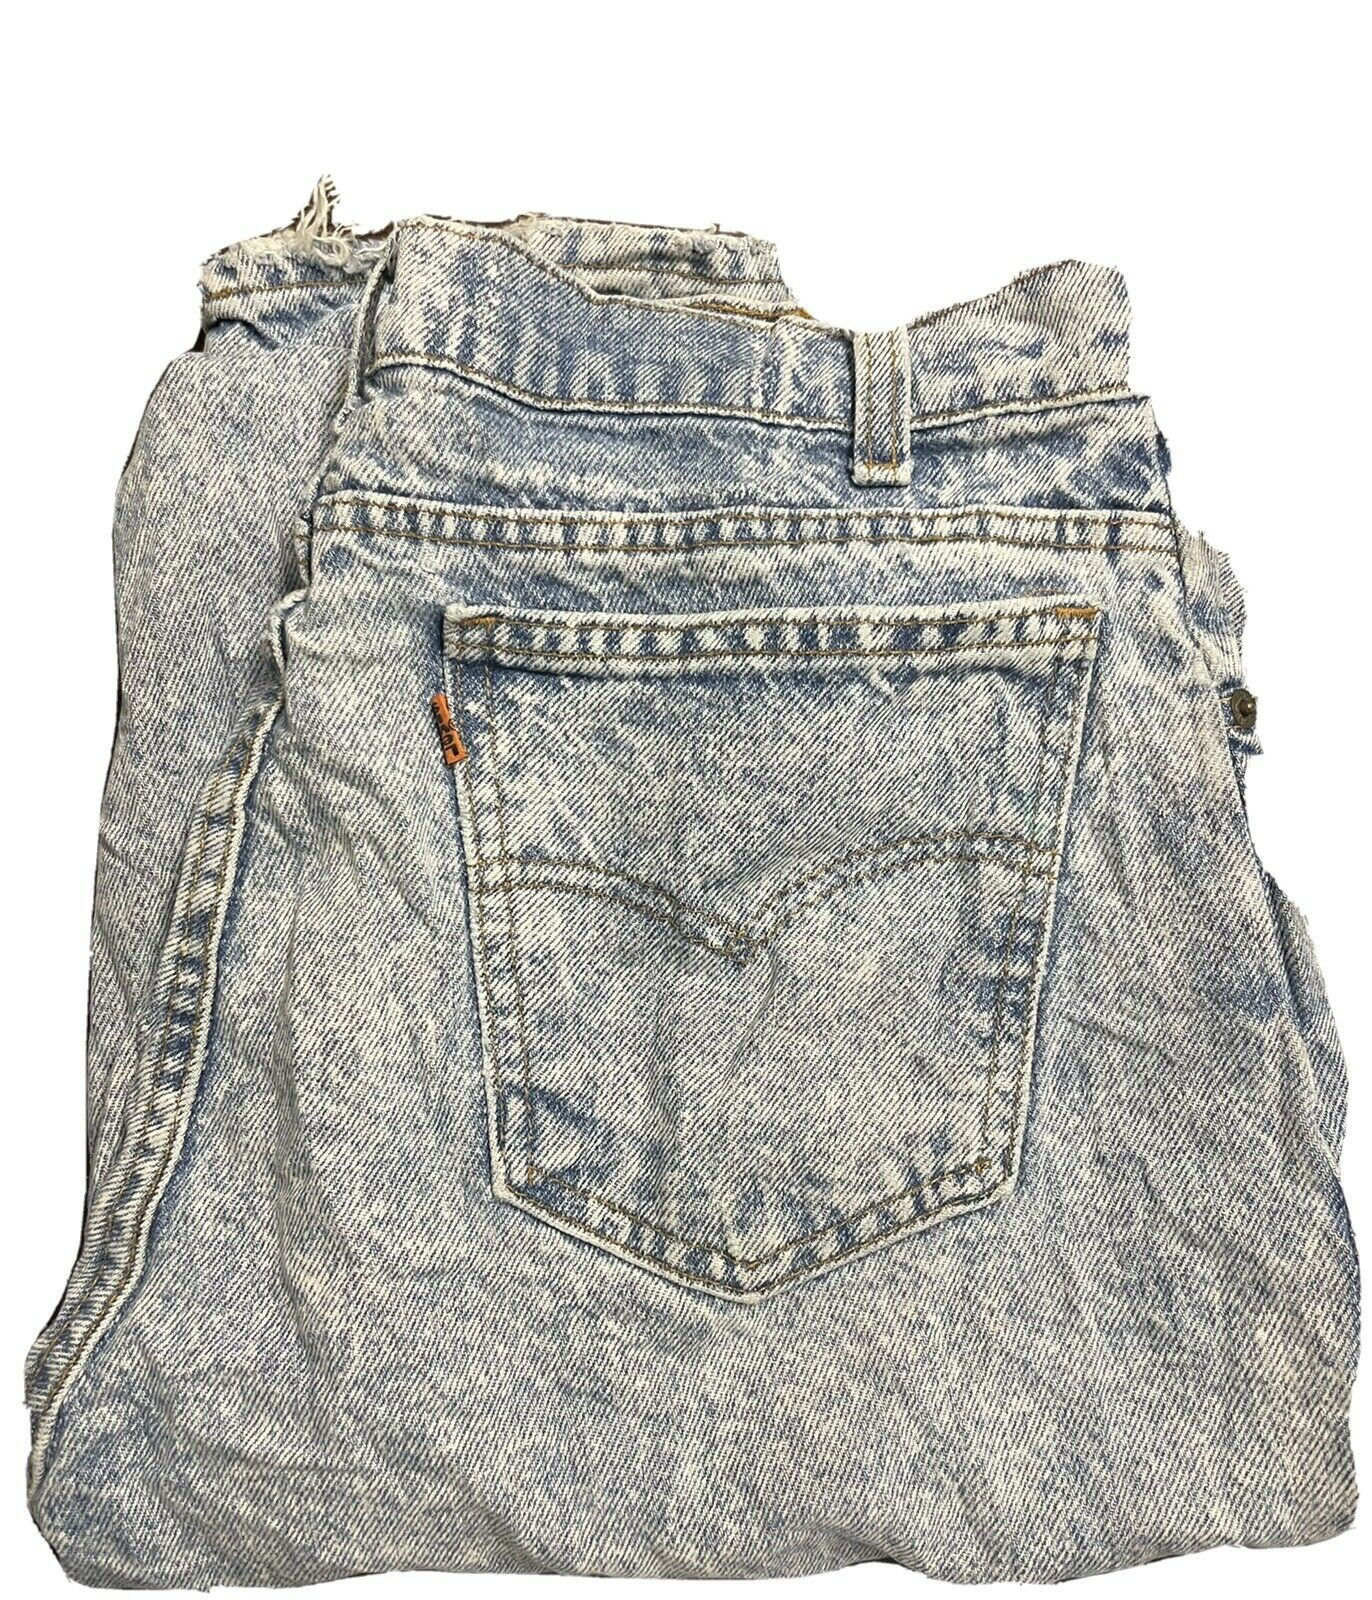 vintage levis jeans 501 made in usa - image 1